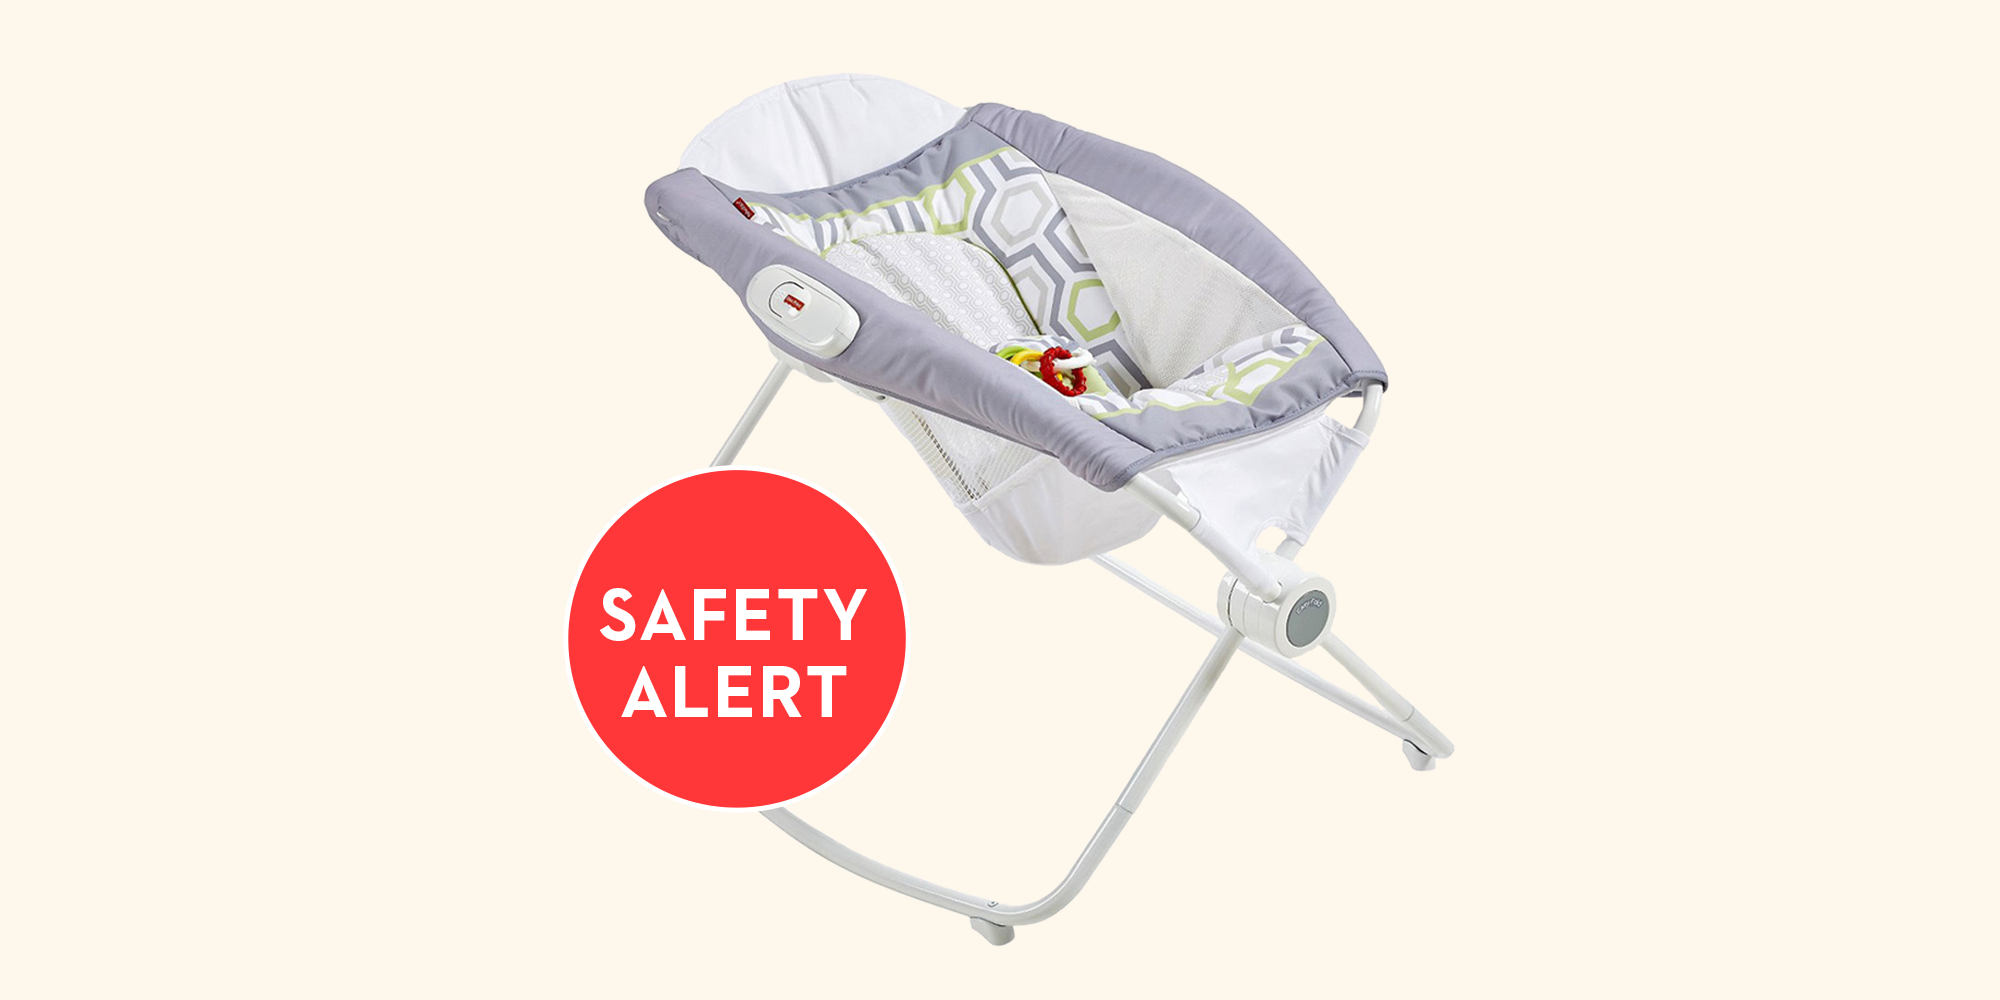 Fisher Price Rock N Play And All Inclined Sleepers Are Recalled